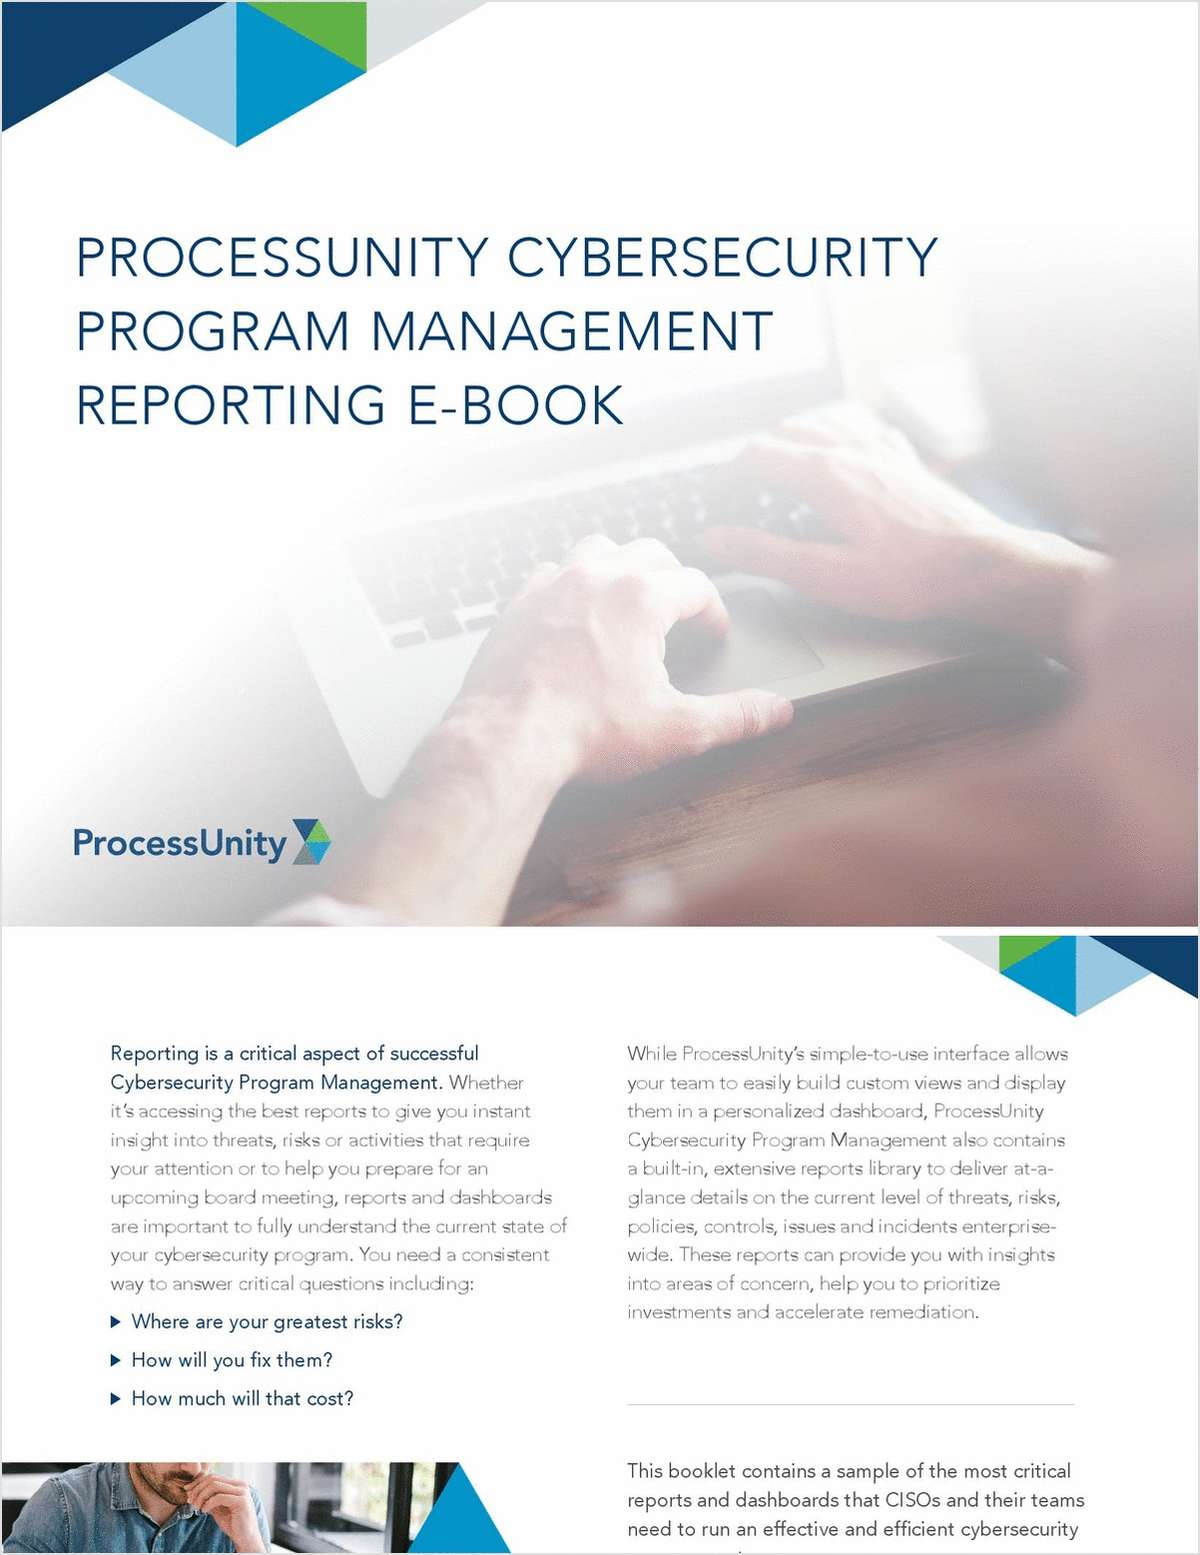 ProcessUnity Cybersecurity Program Management Reporting E-Book